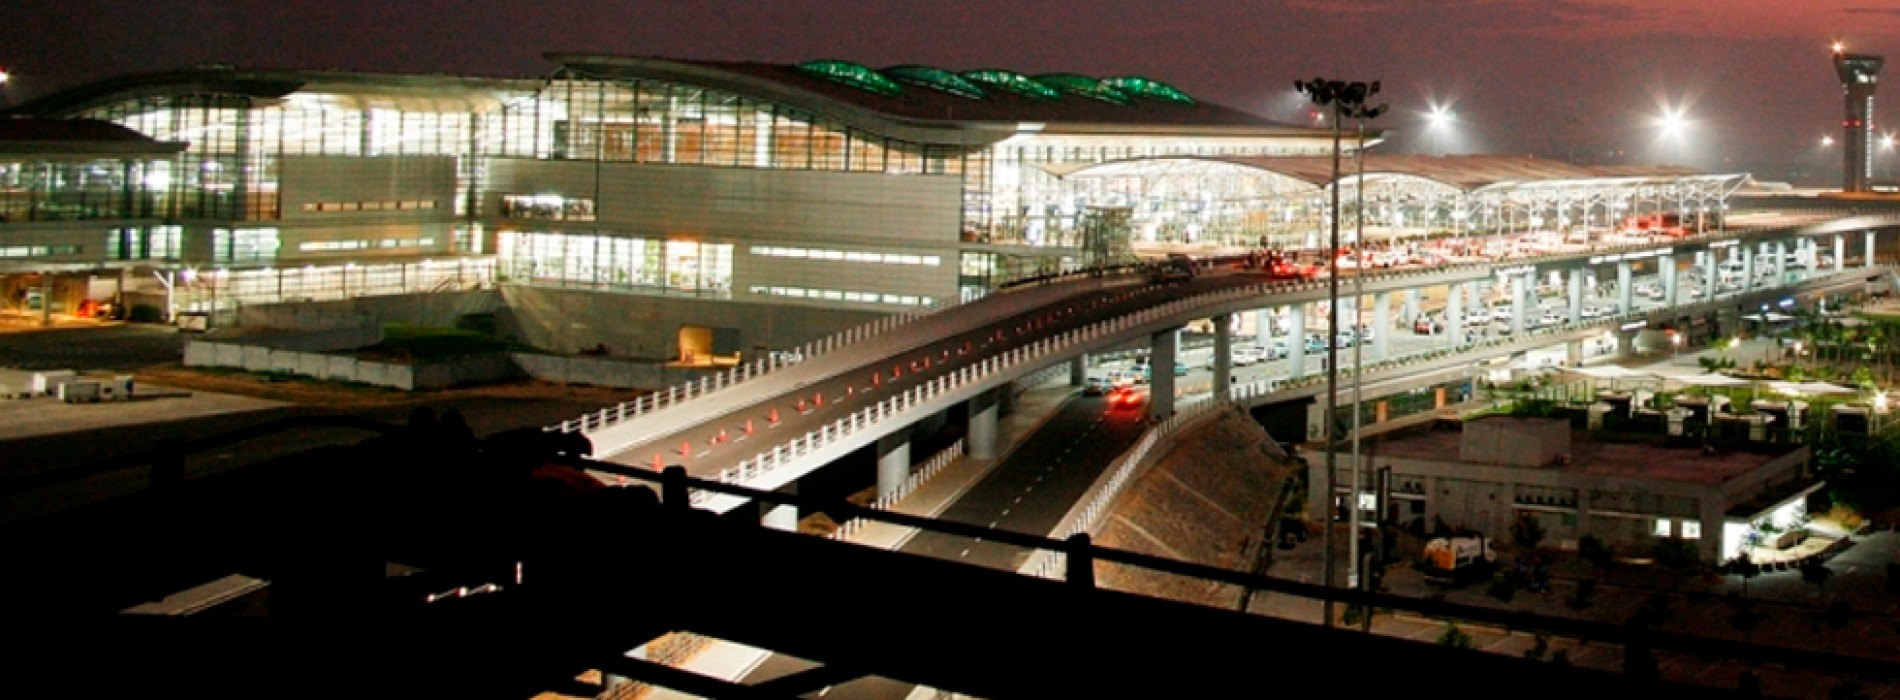 GMR's Hyderabad airport introduces new facility